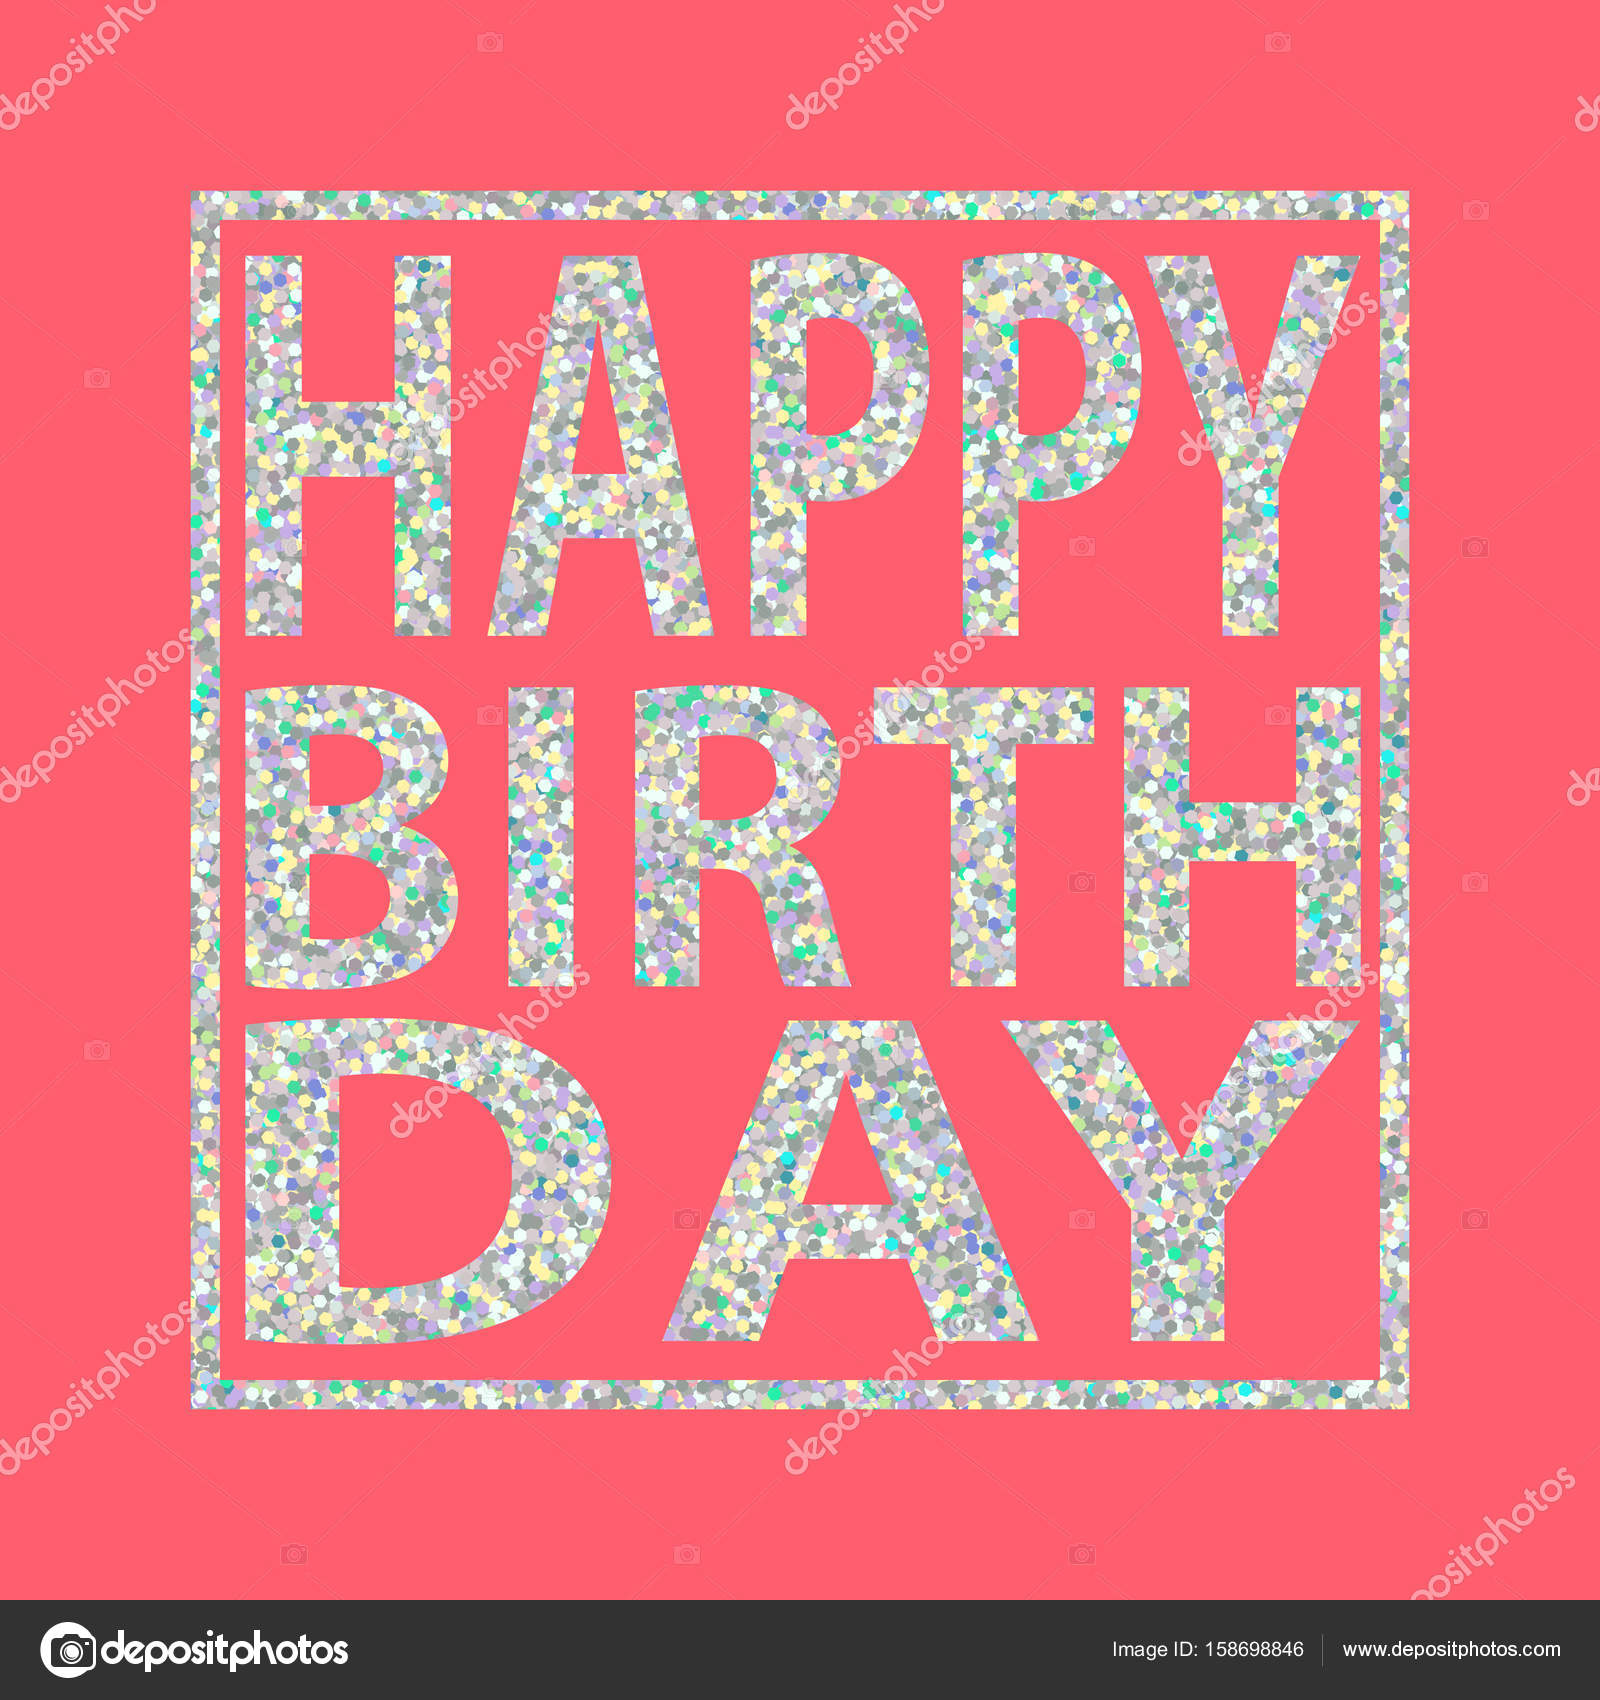 Happy birthday quote silver glitter girl pink background stock happy birthday quote silver glitter girl pink background stock vector 158698846 stopboris